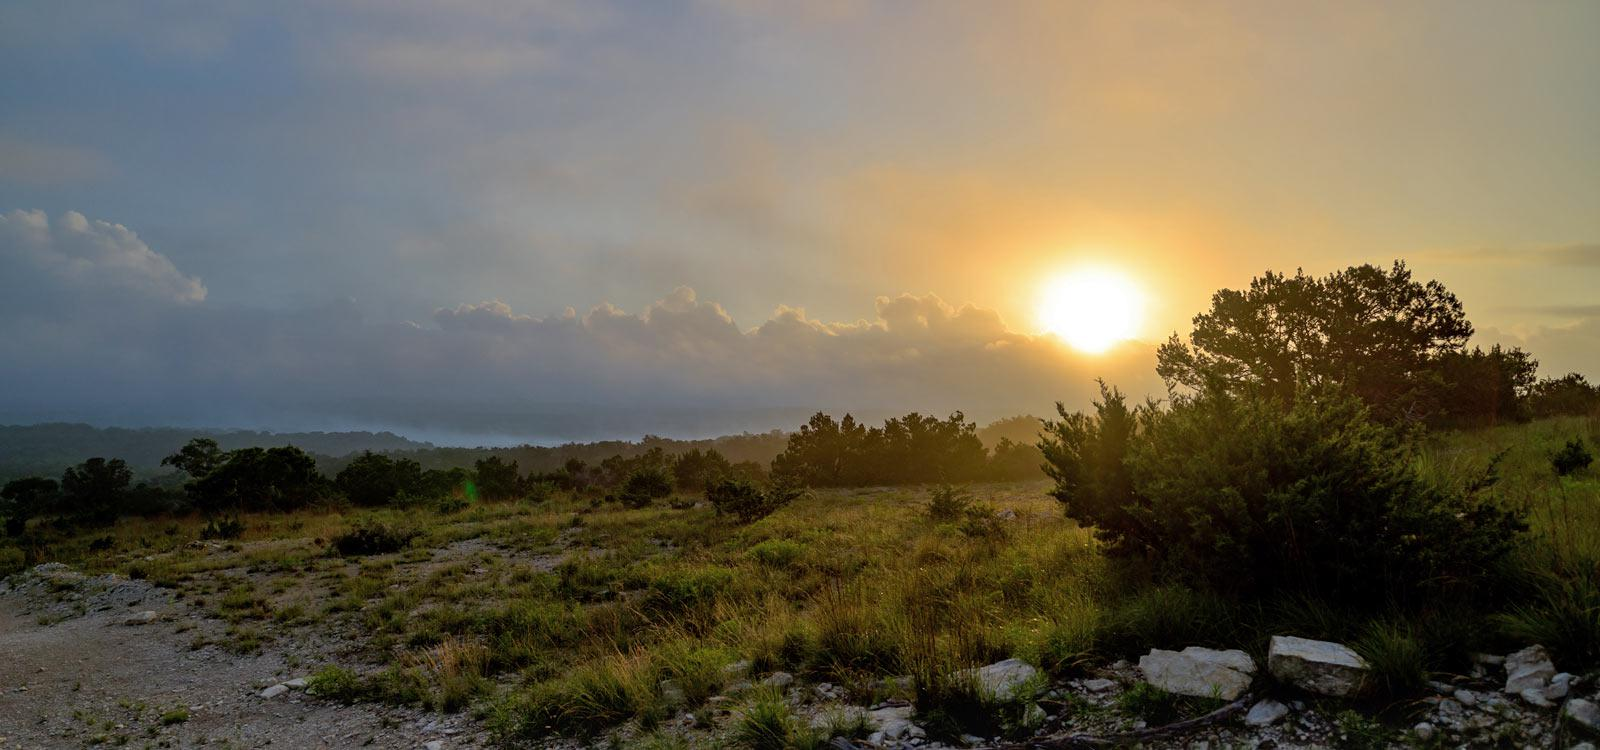 How to Find Land for Sale in Texas